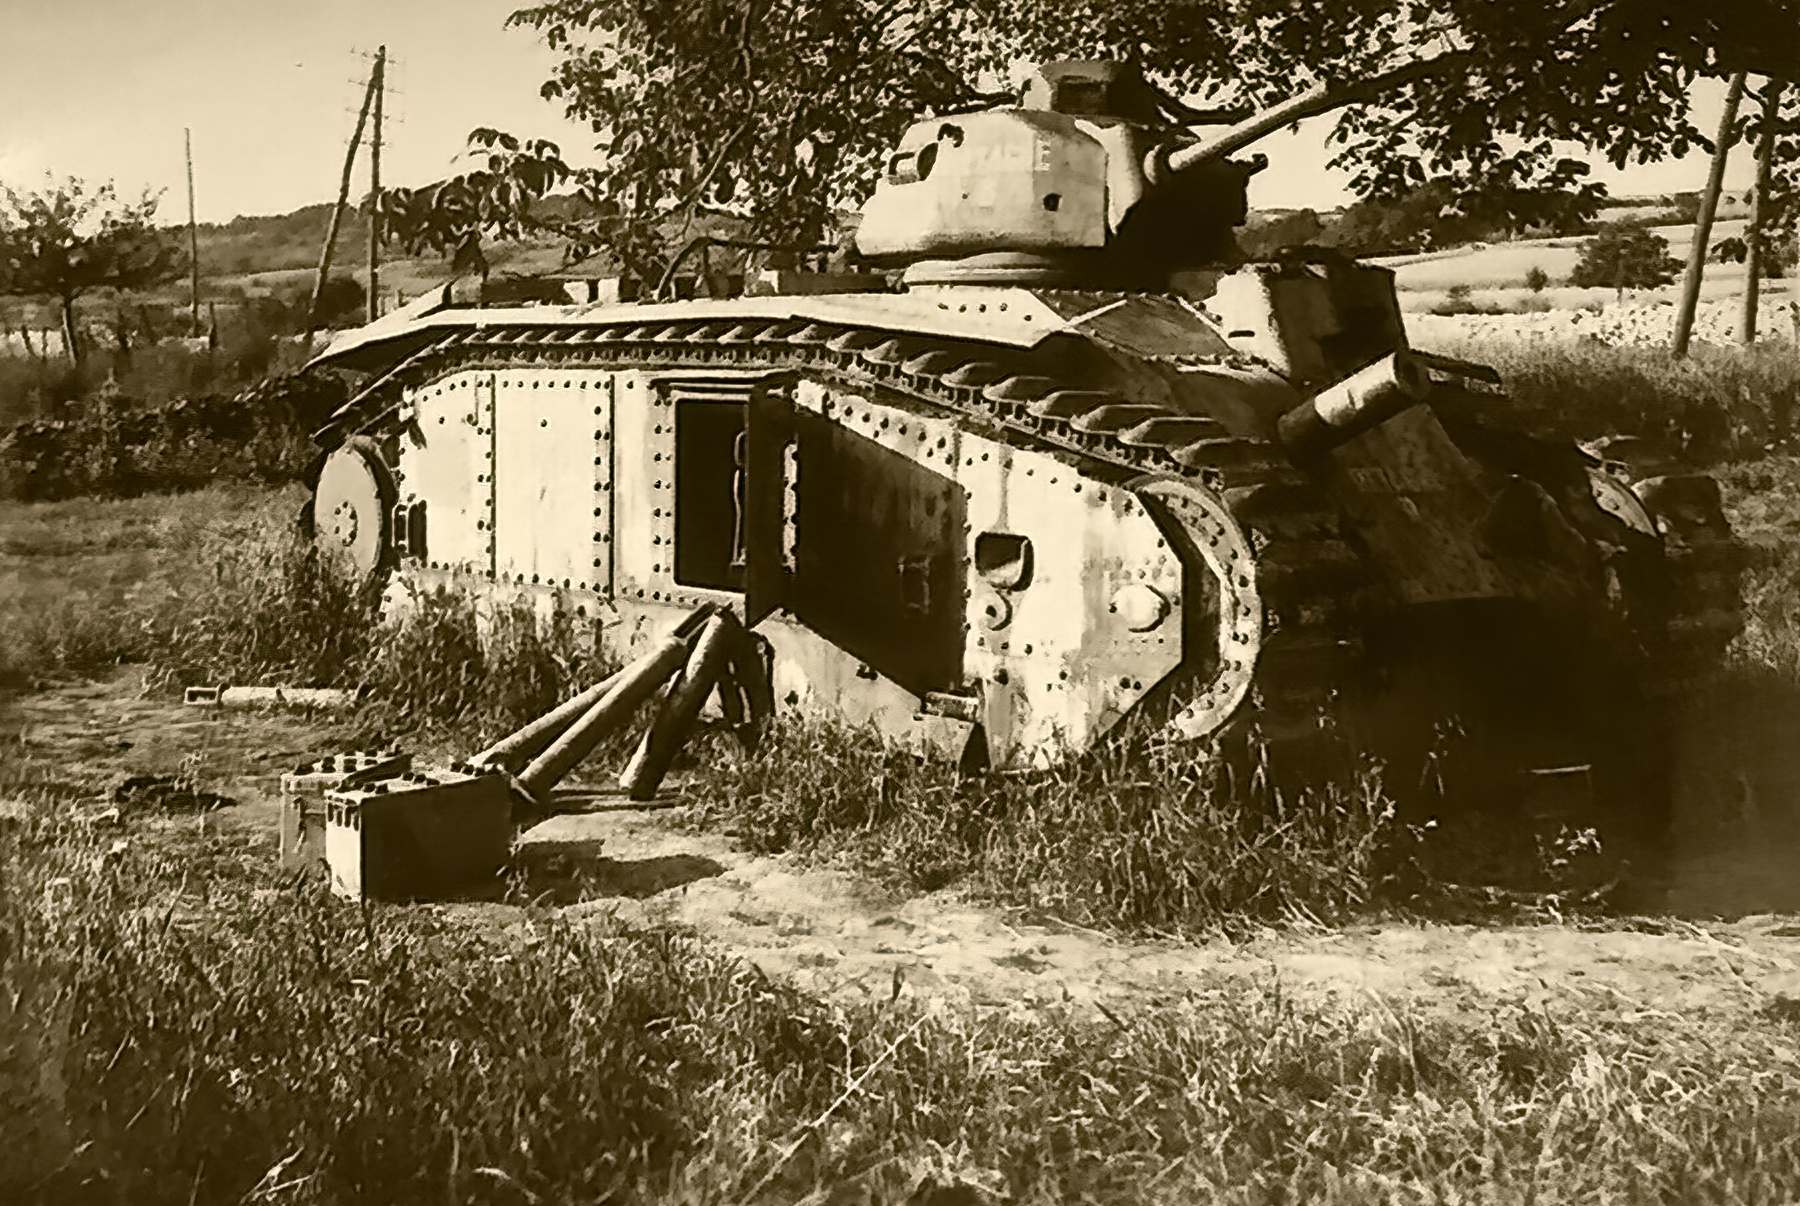 French Army Renault Char B1 named Bretagne Brittany being disarmed France 1940 ebay 01